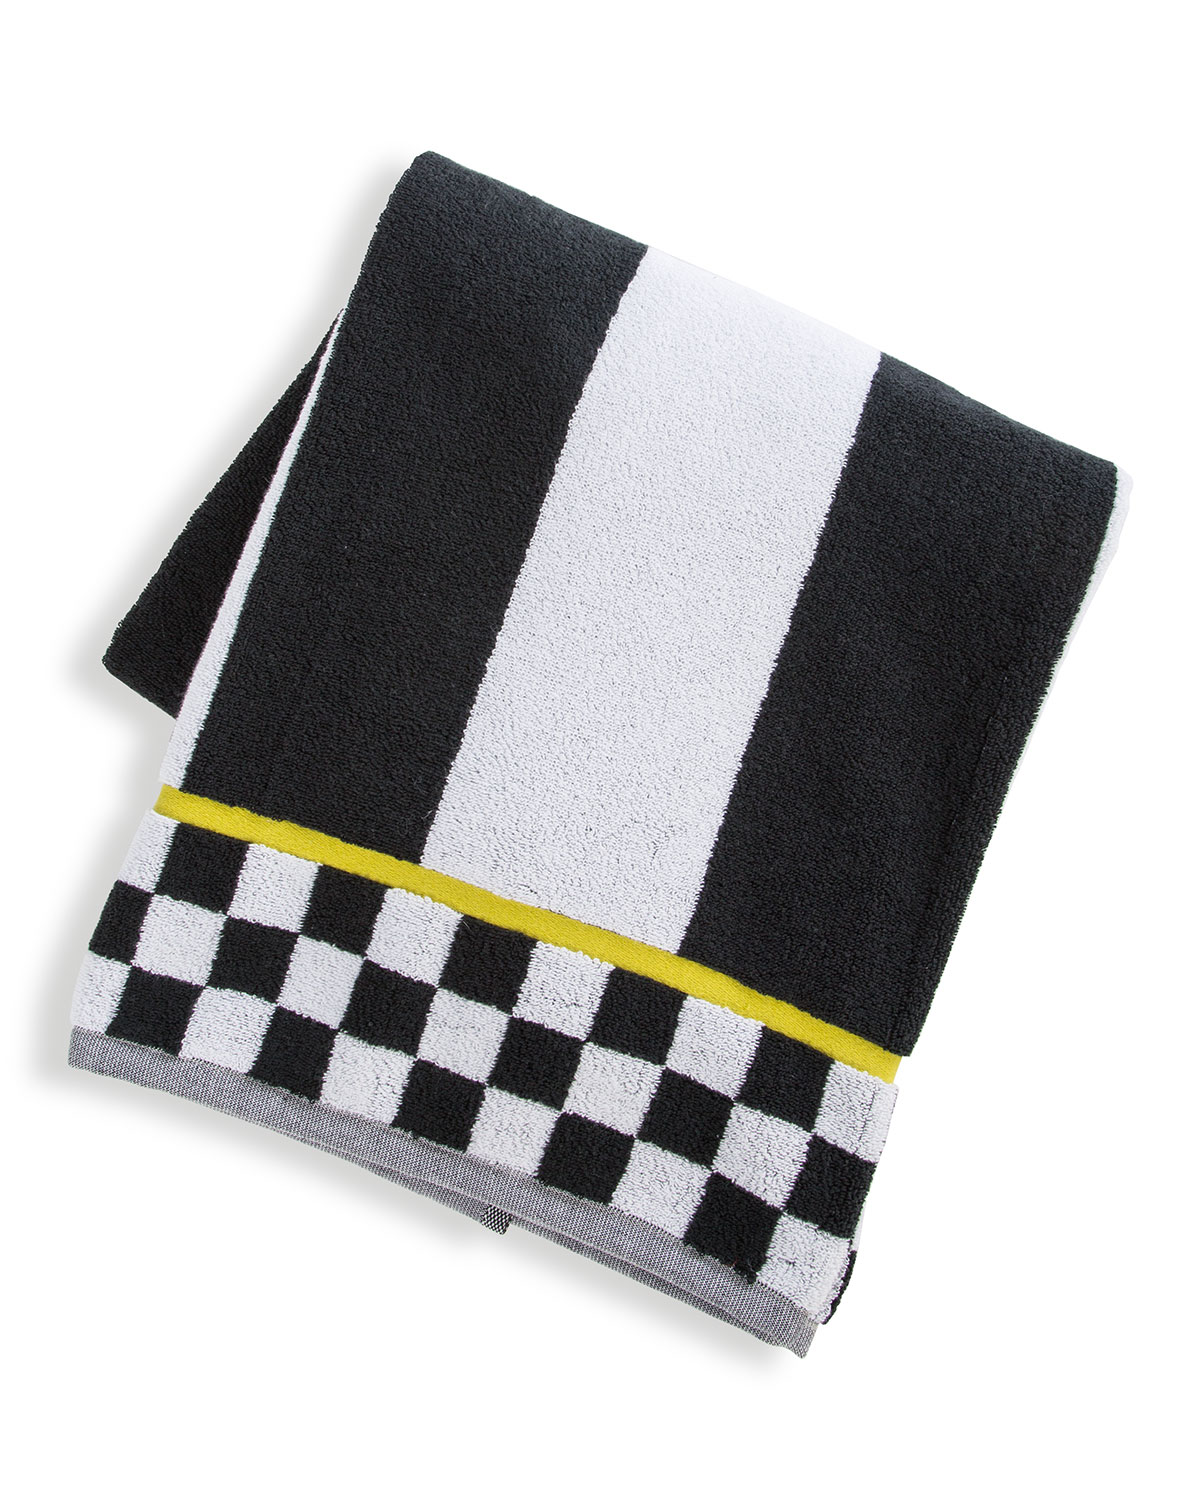 Courtly Stripe Bath Towel